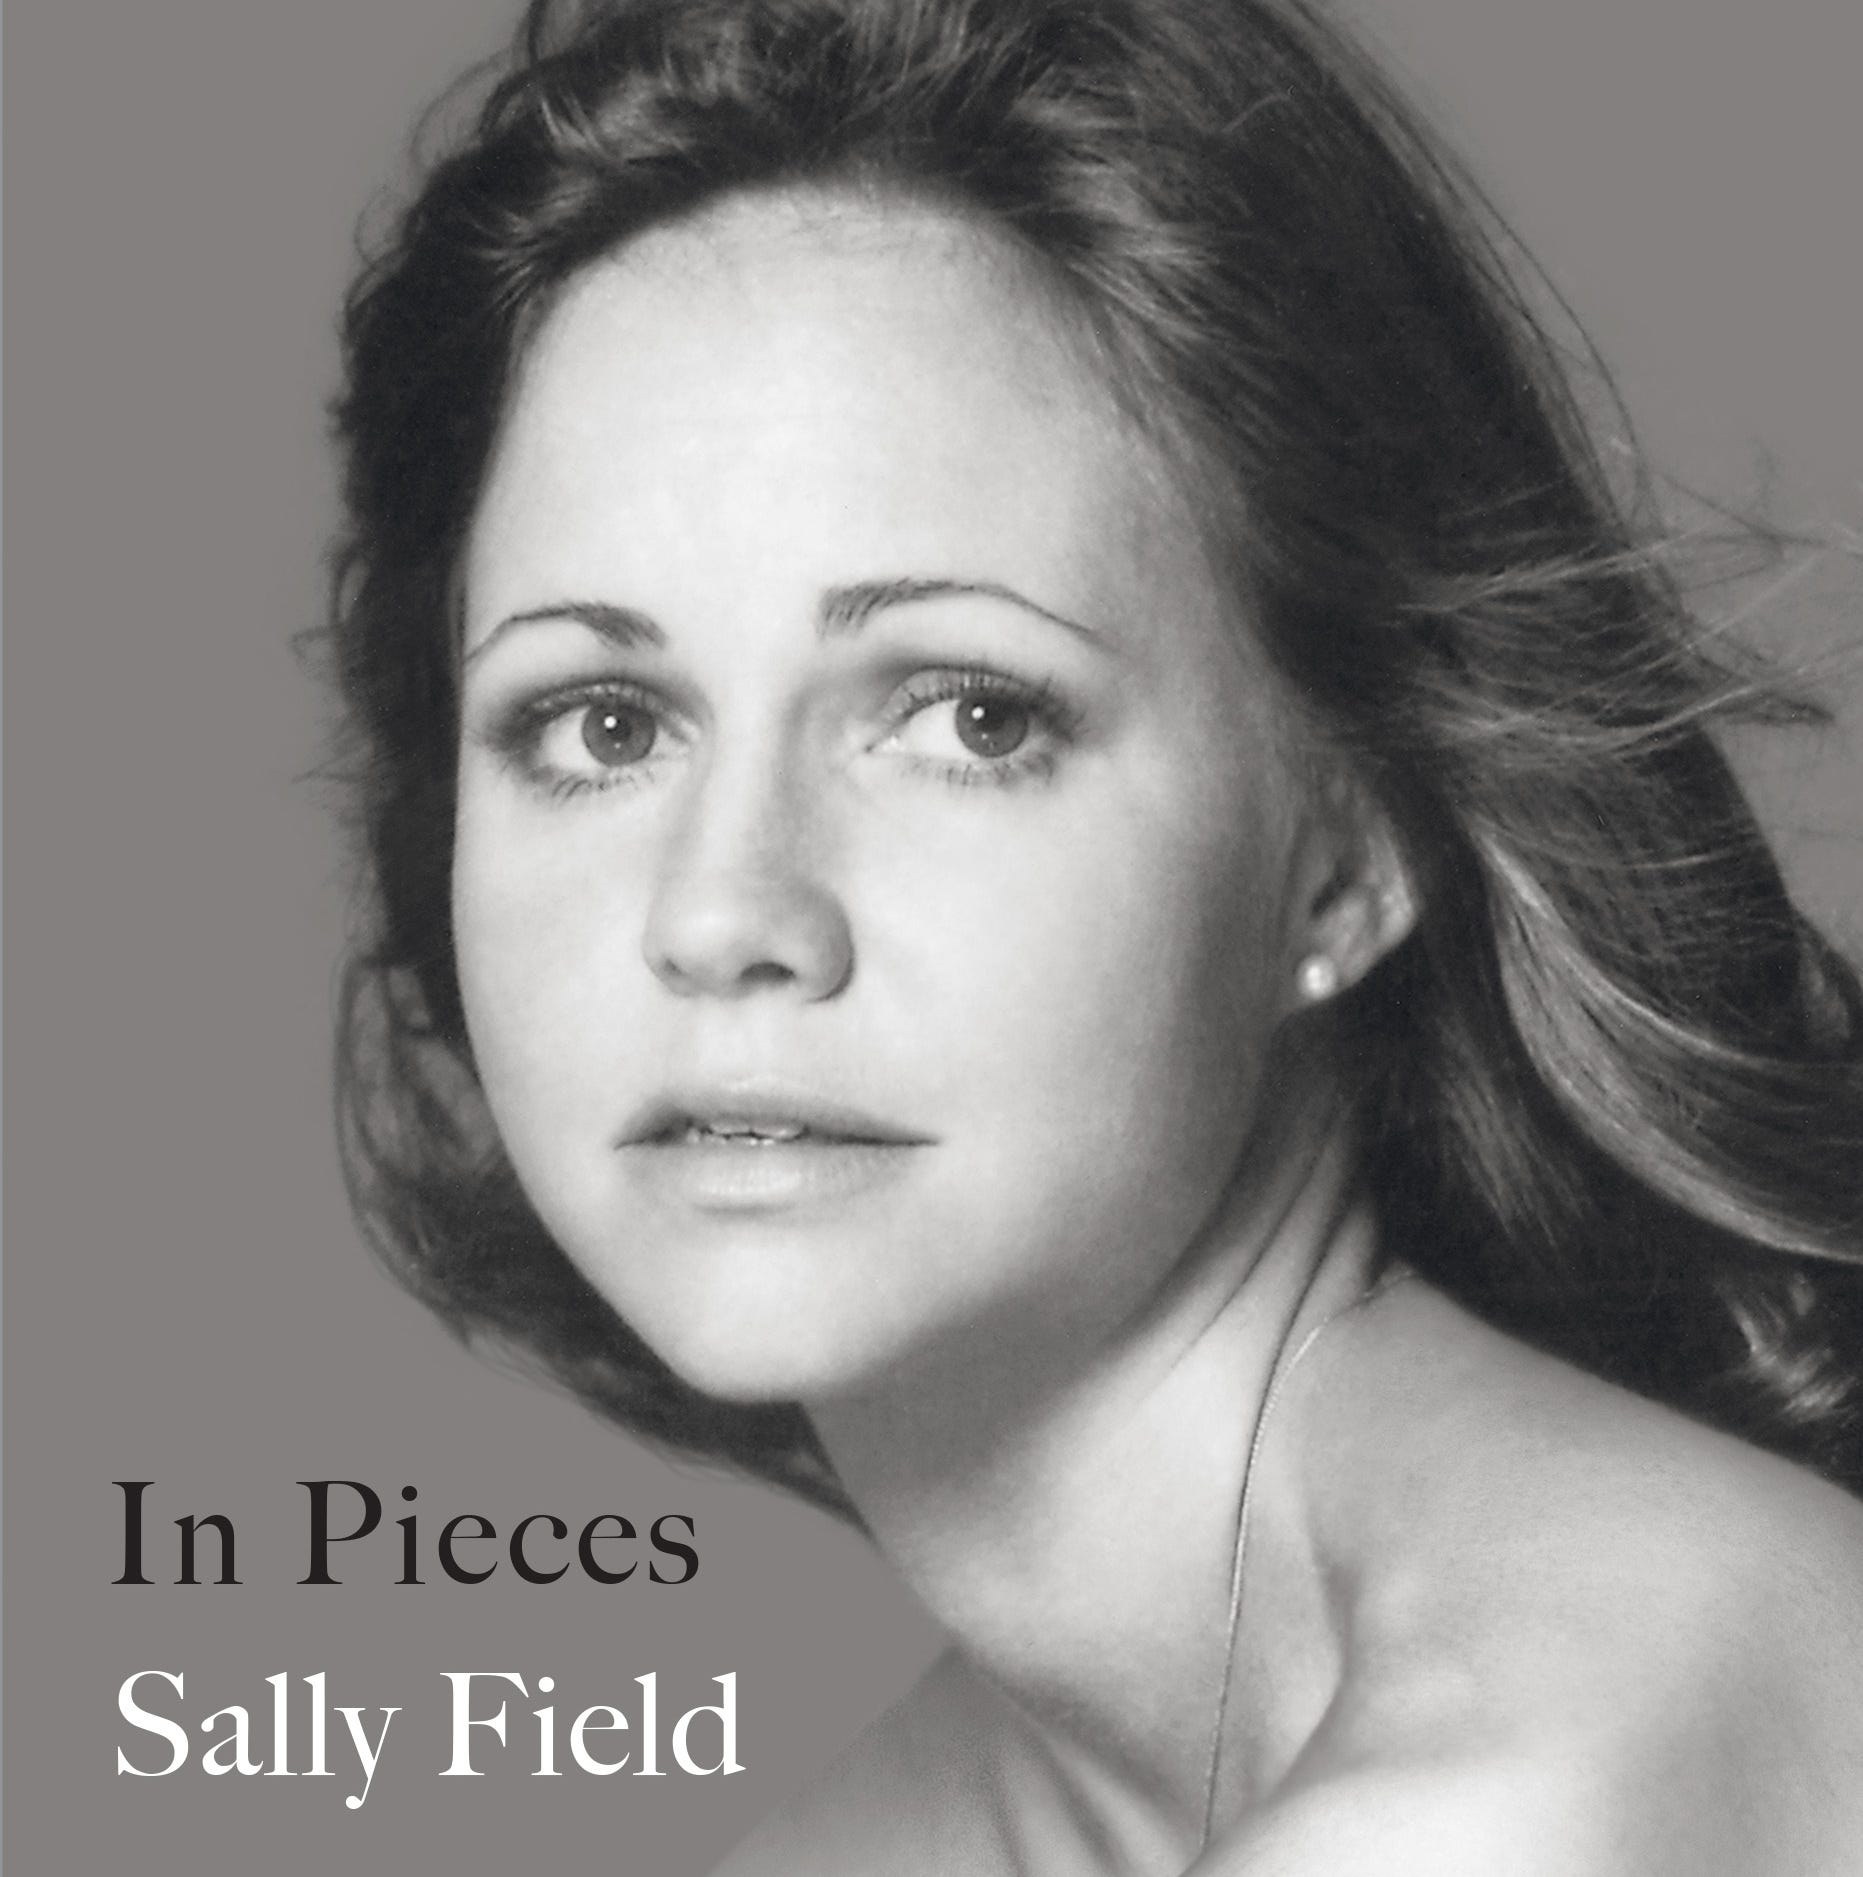 Interview: Sally Field opens up about Burt, childhood abuse, lifelong loneliness